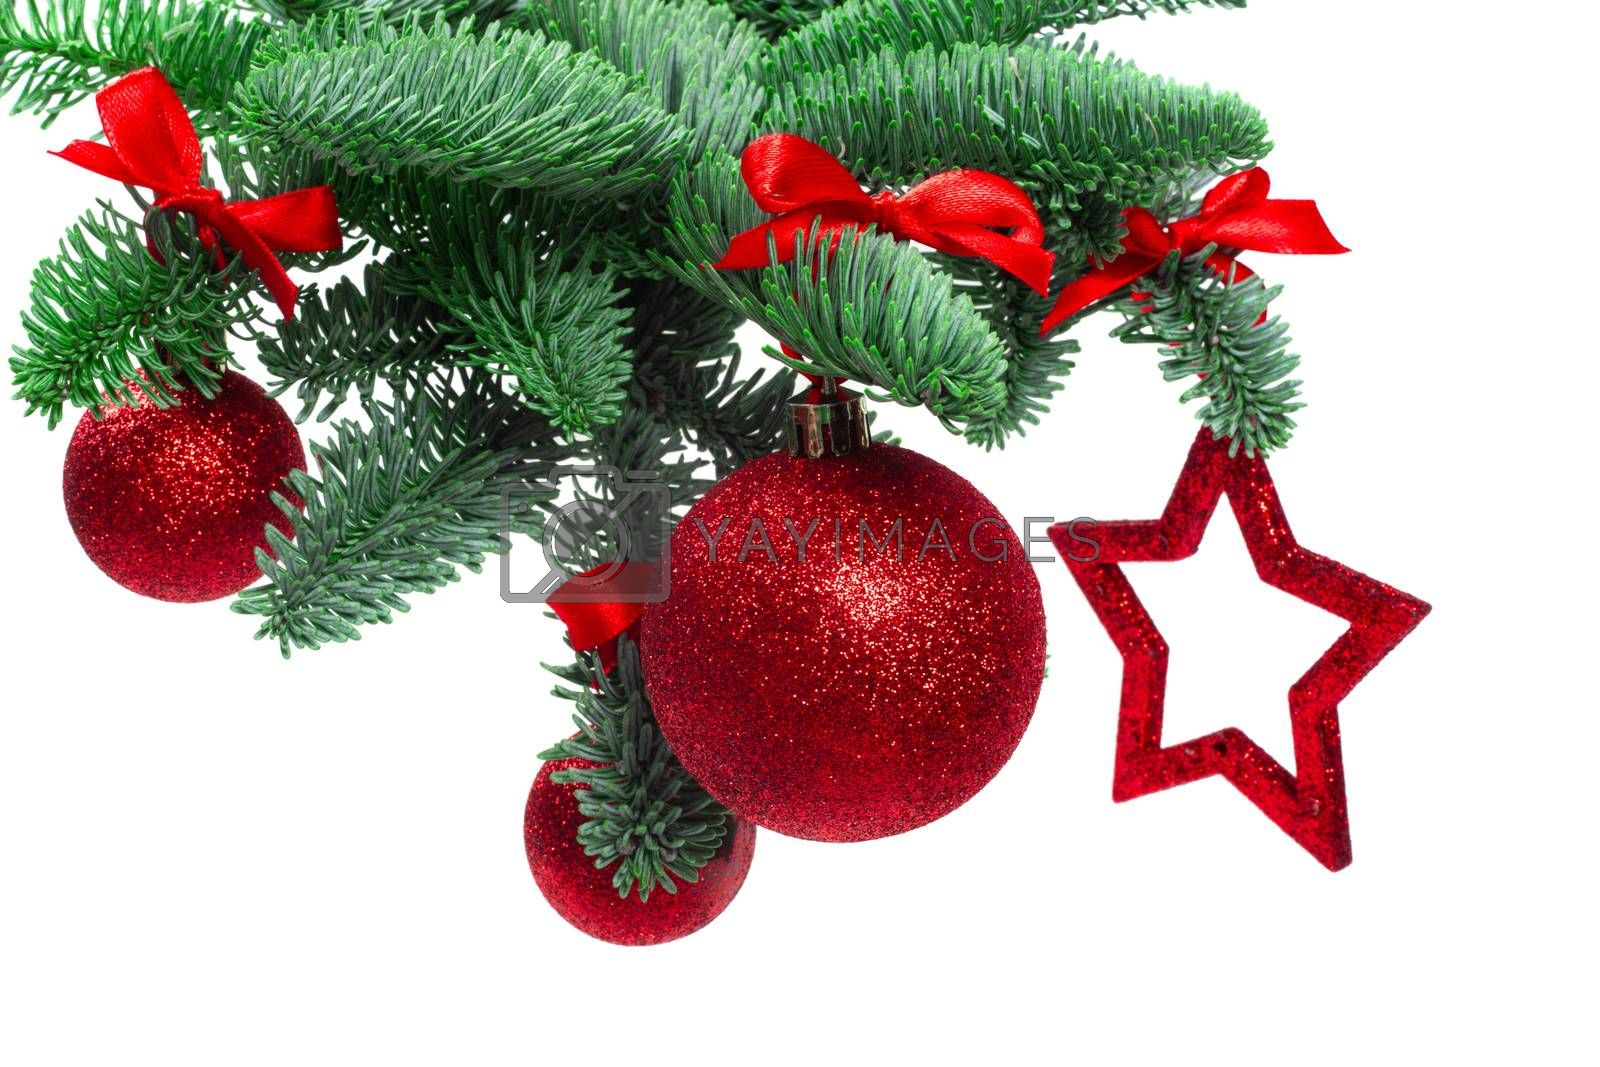 Christmas evergreen spruce noble fir tree and red glitter glass bauble balls and star isolated on white background